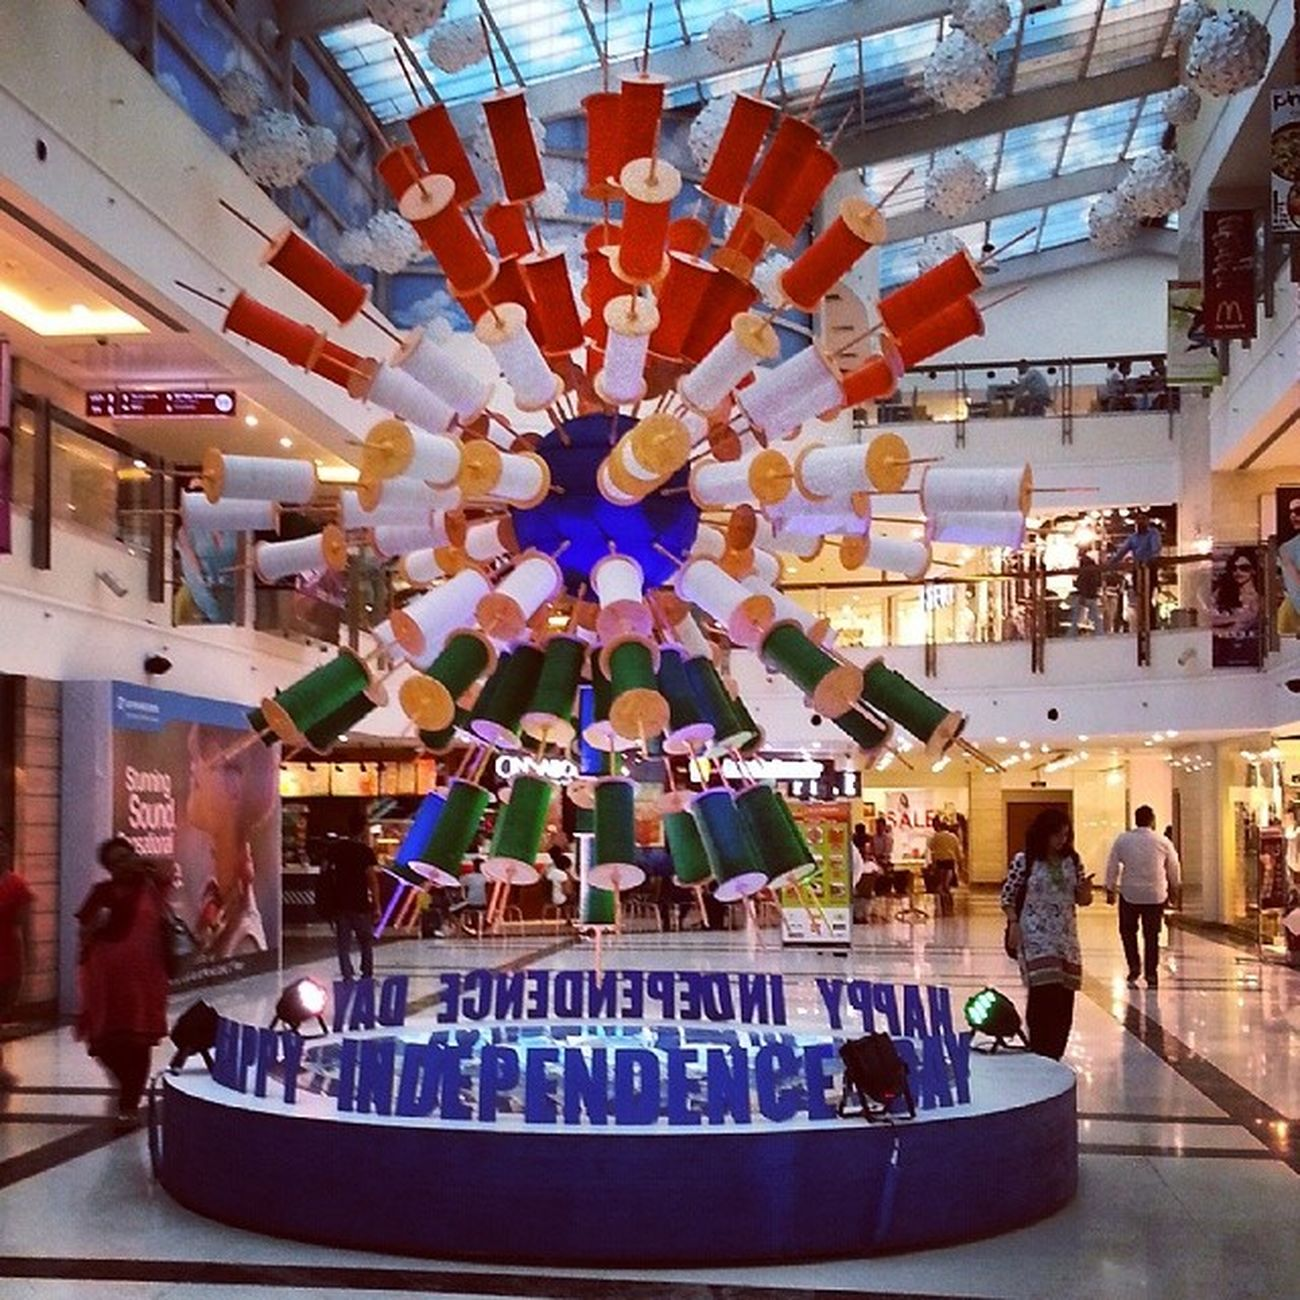 Happy independence day India 15thaugust Delhi Dlfsaket Selectcitywalk Saket Independenceday Celebrationday Celeberation Kites Party Enjoy Food Goodmorning